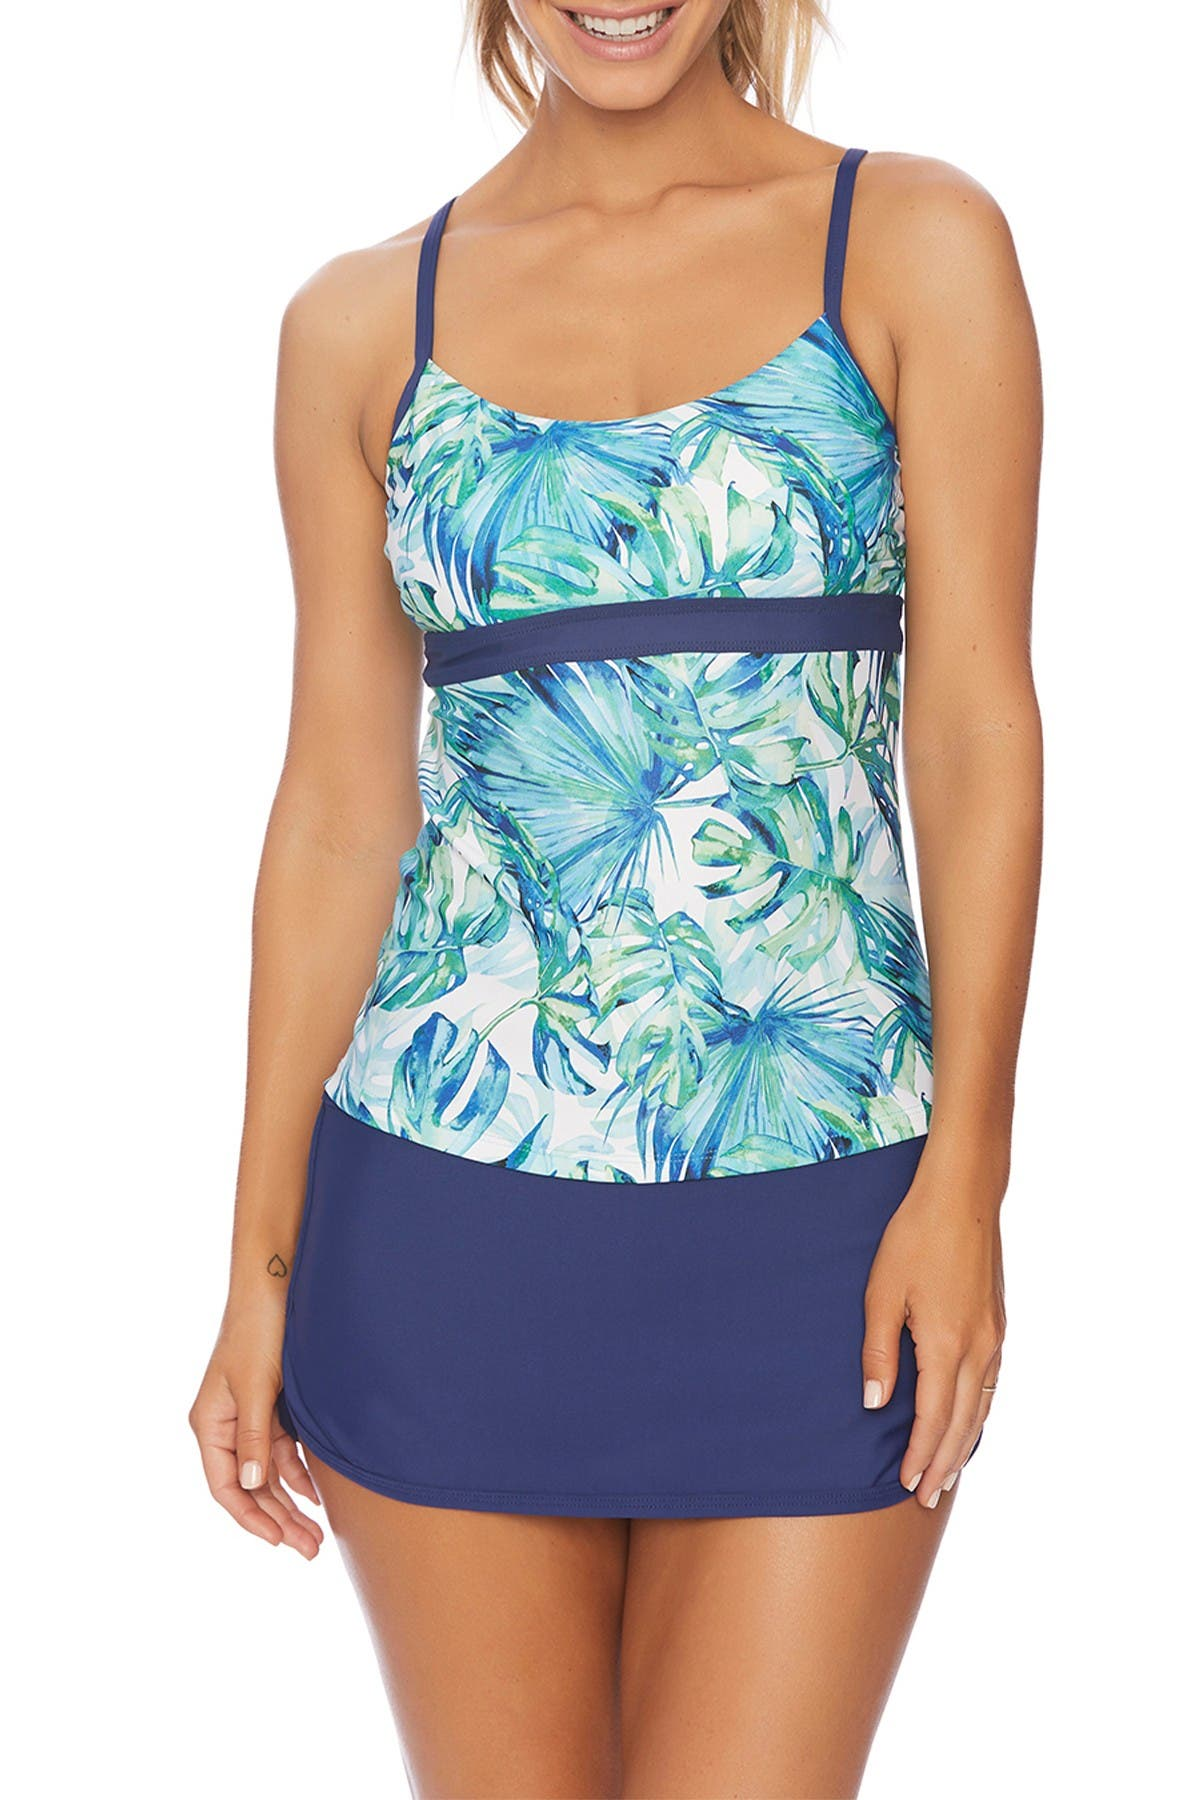 Image of NEXT Staycation Intention Tankini